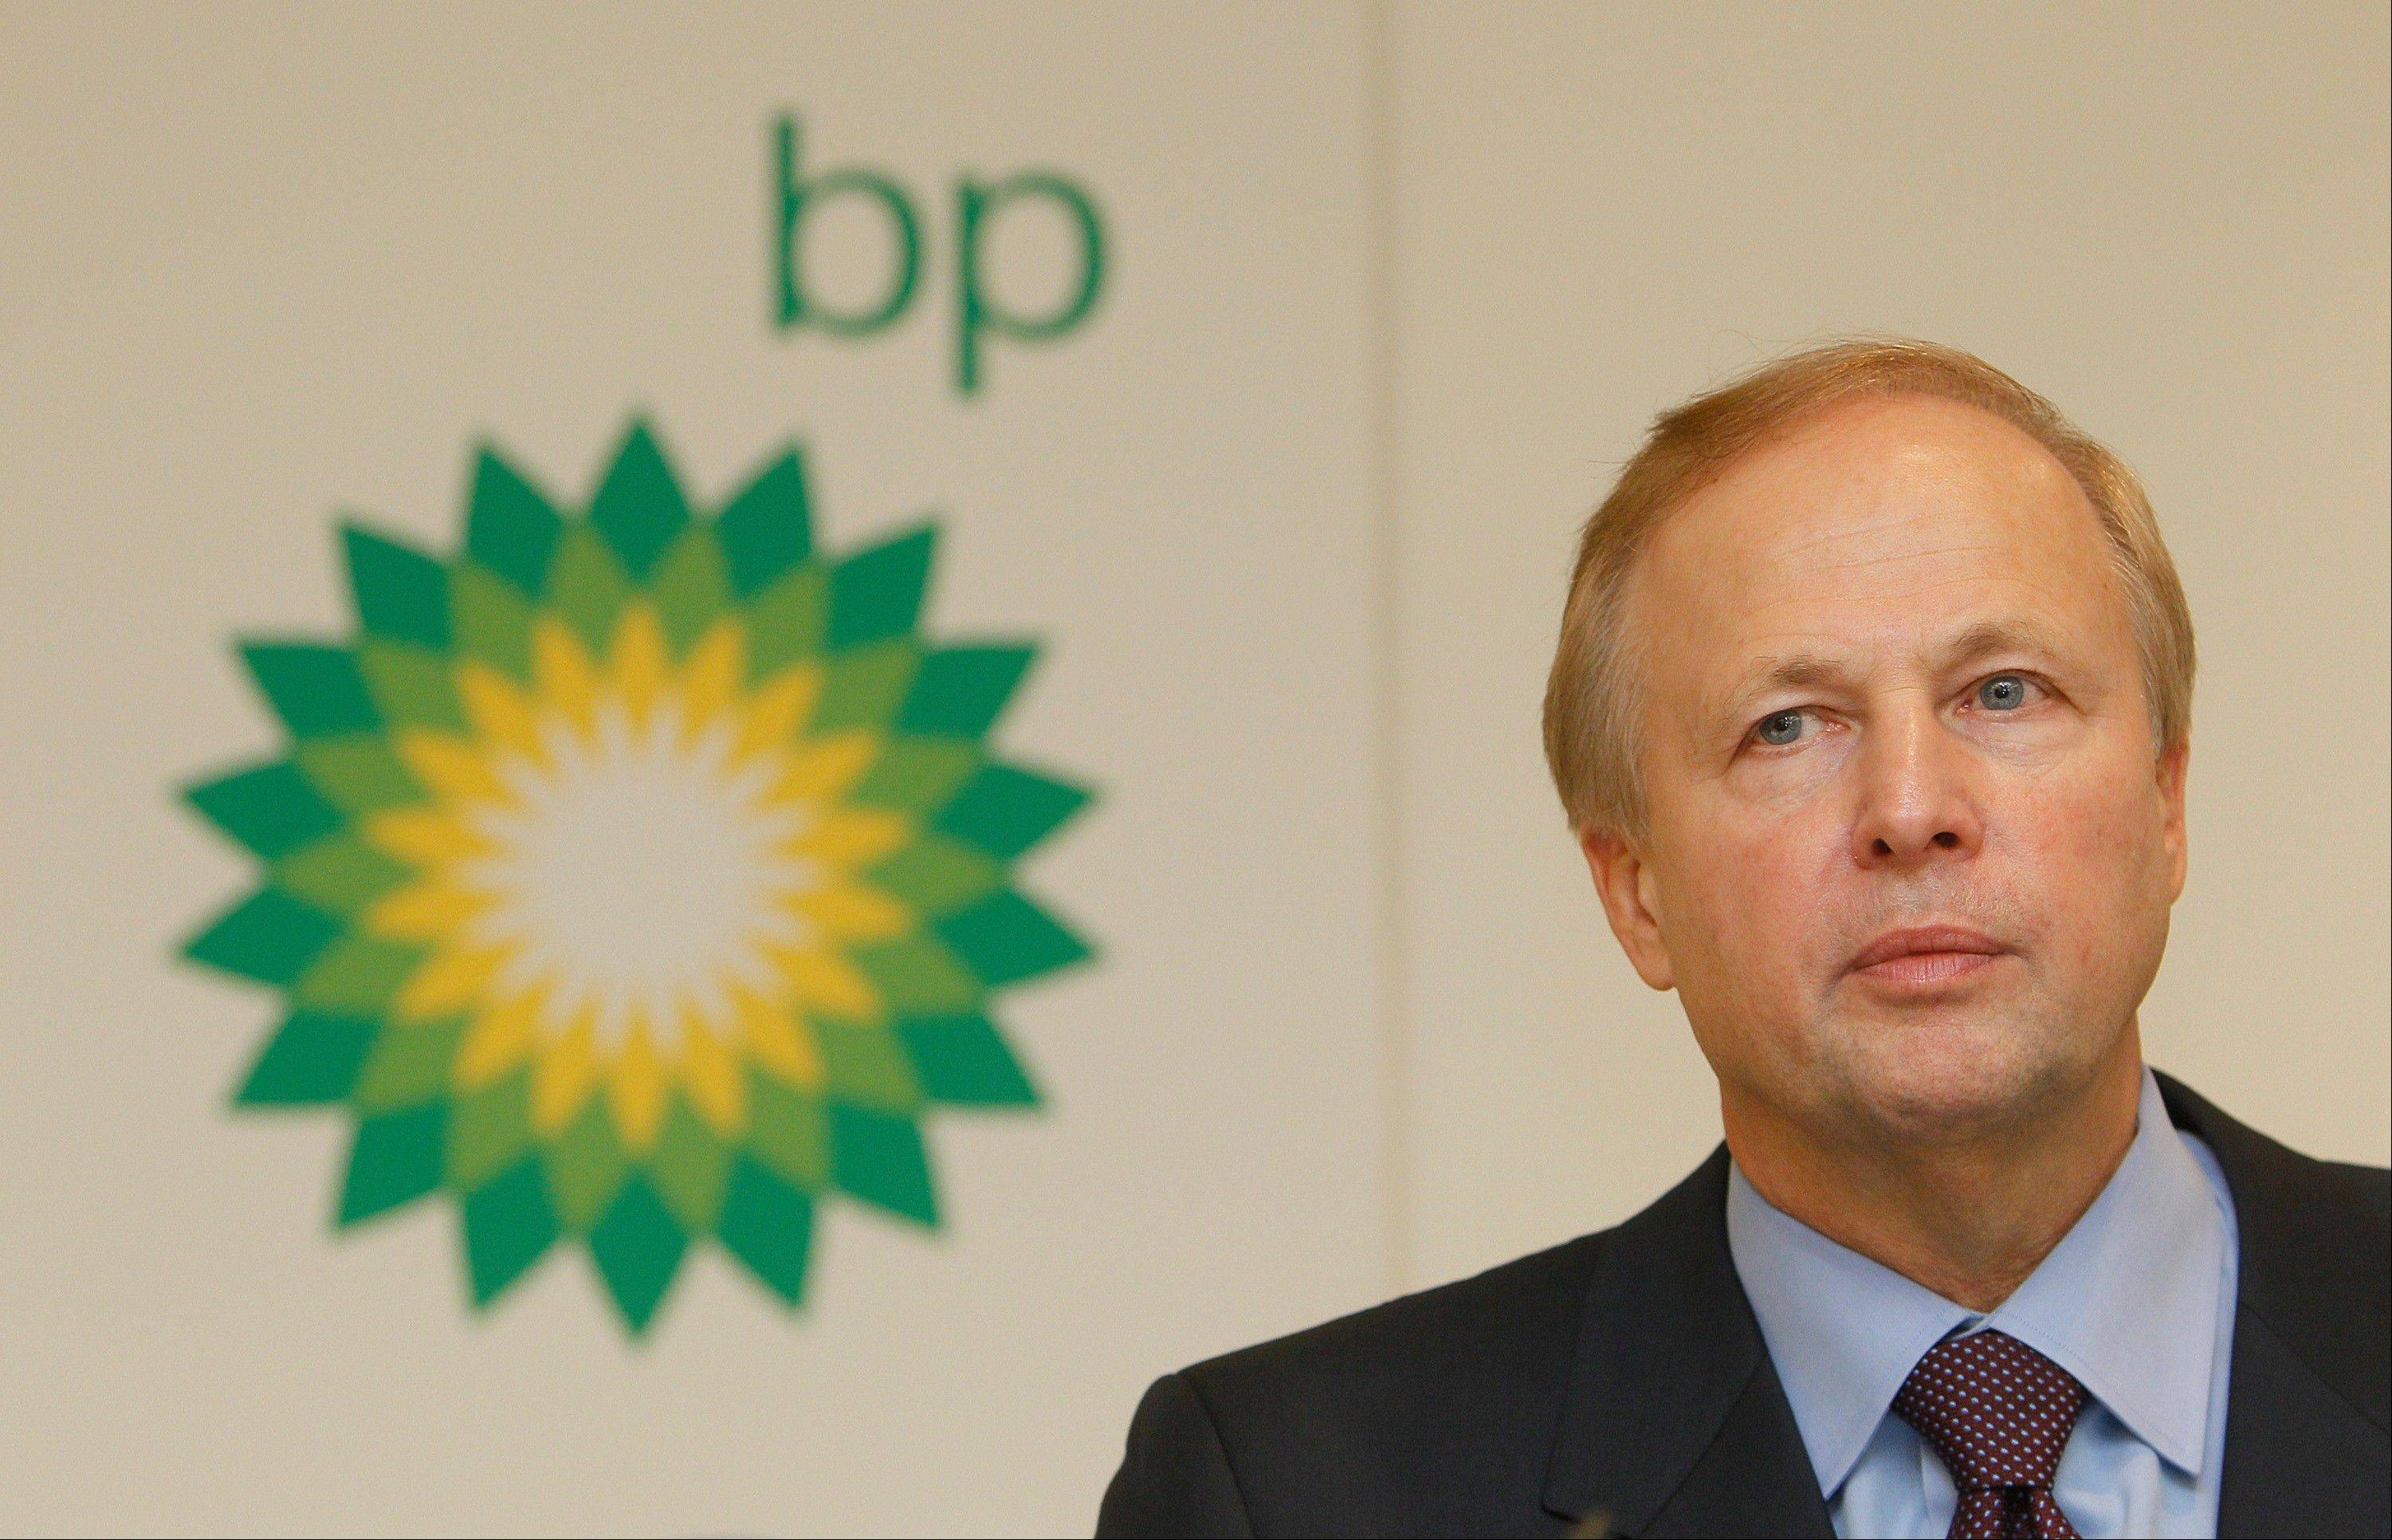 Under Bob Dudley, who became BP PLC's CEO in October 2010, BP has been selling smaller assets while holding onto promising large resources it hopes to exploit with its expertise in developing large projects.